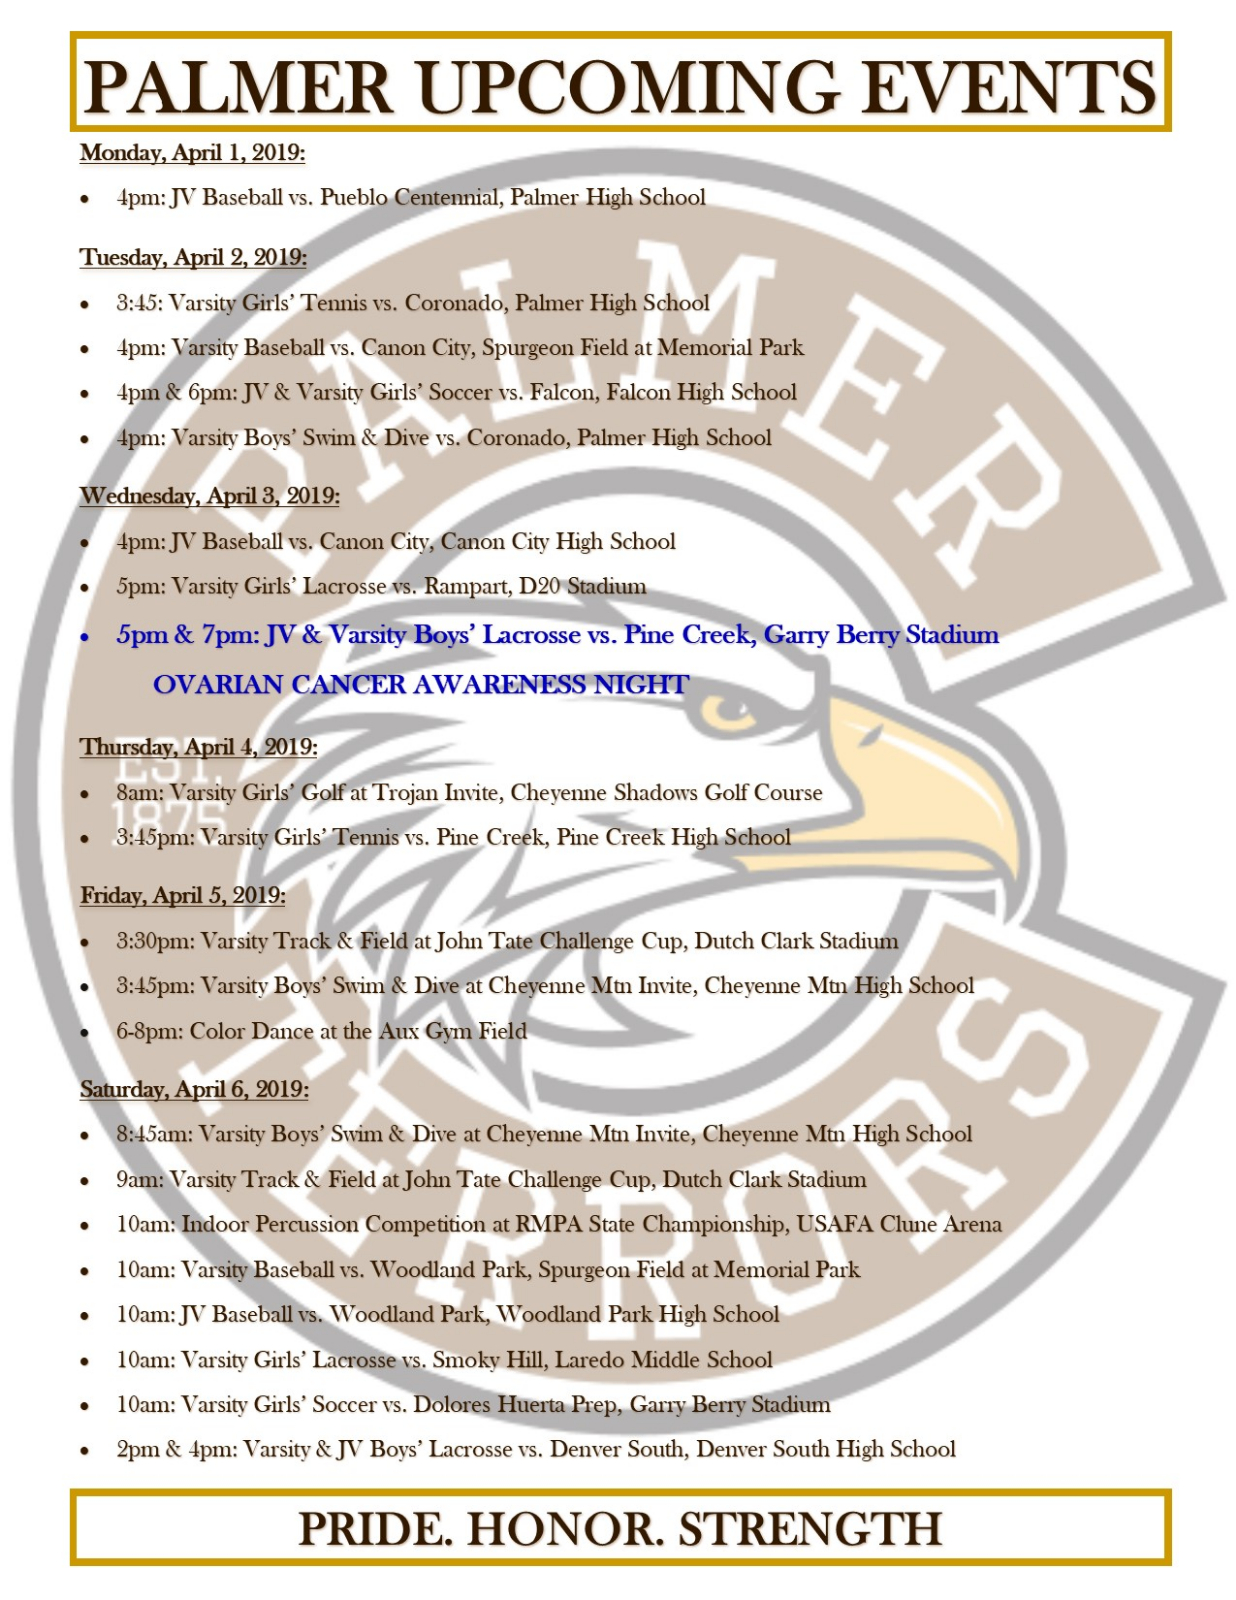 Palmer Events Week of April 1, 2019